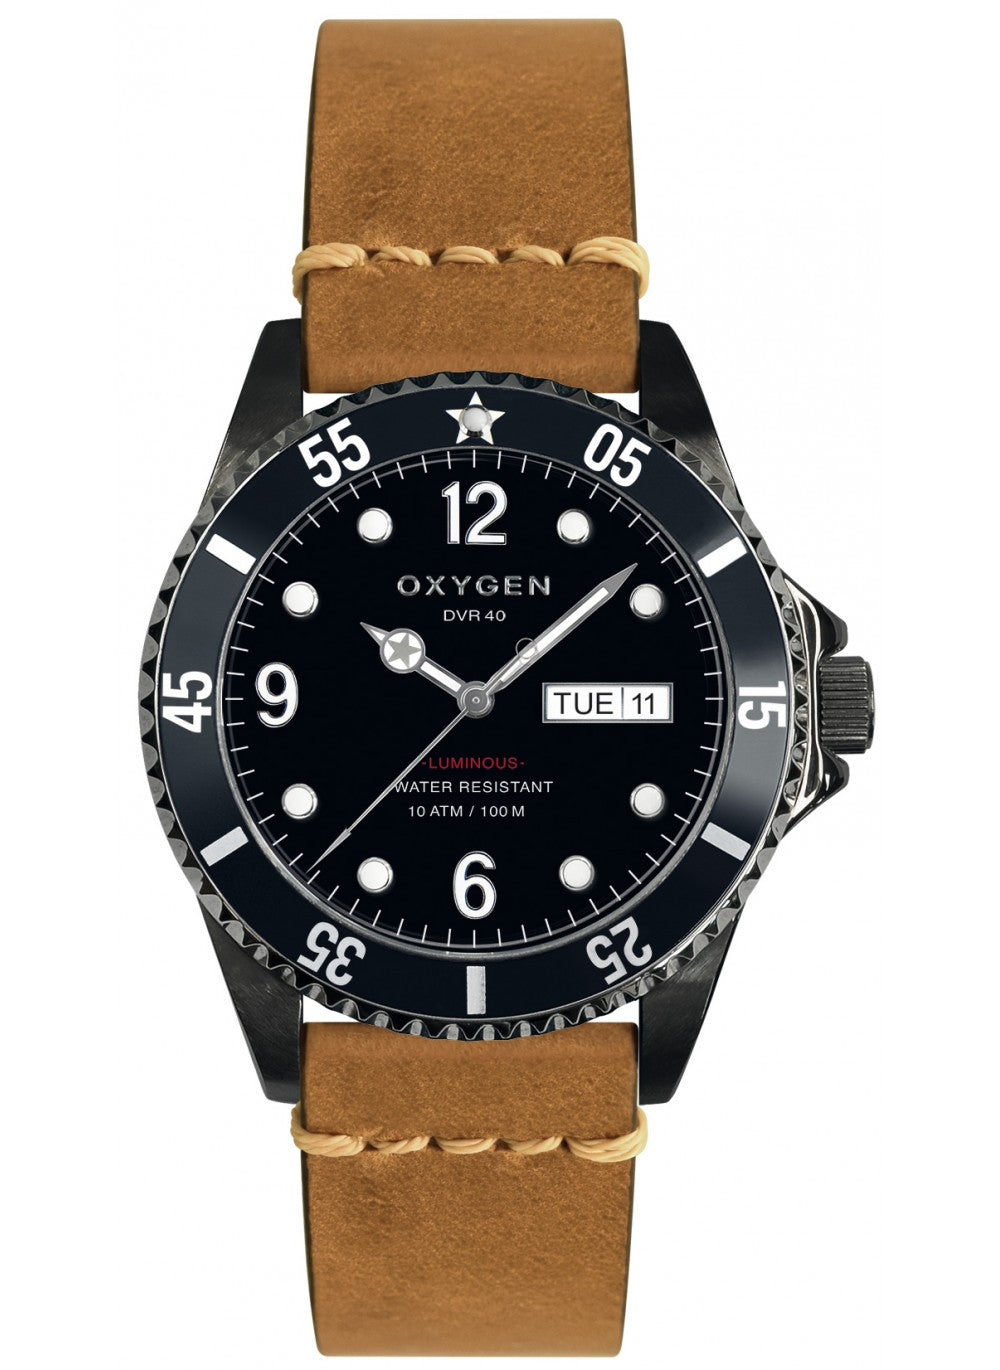 Montre Exchange Diver Moby Dick black 40 bracelet cuir marron clair - oxygen watch